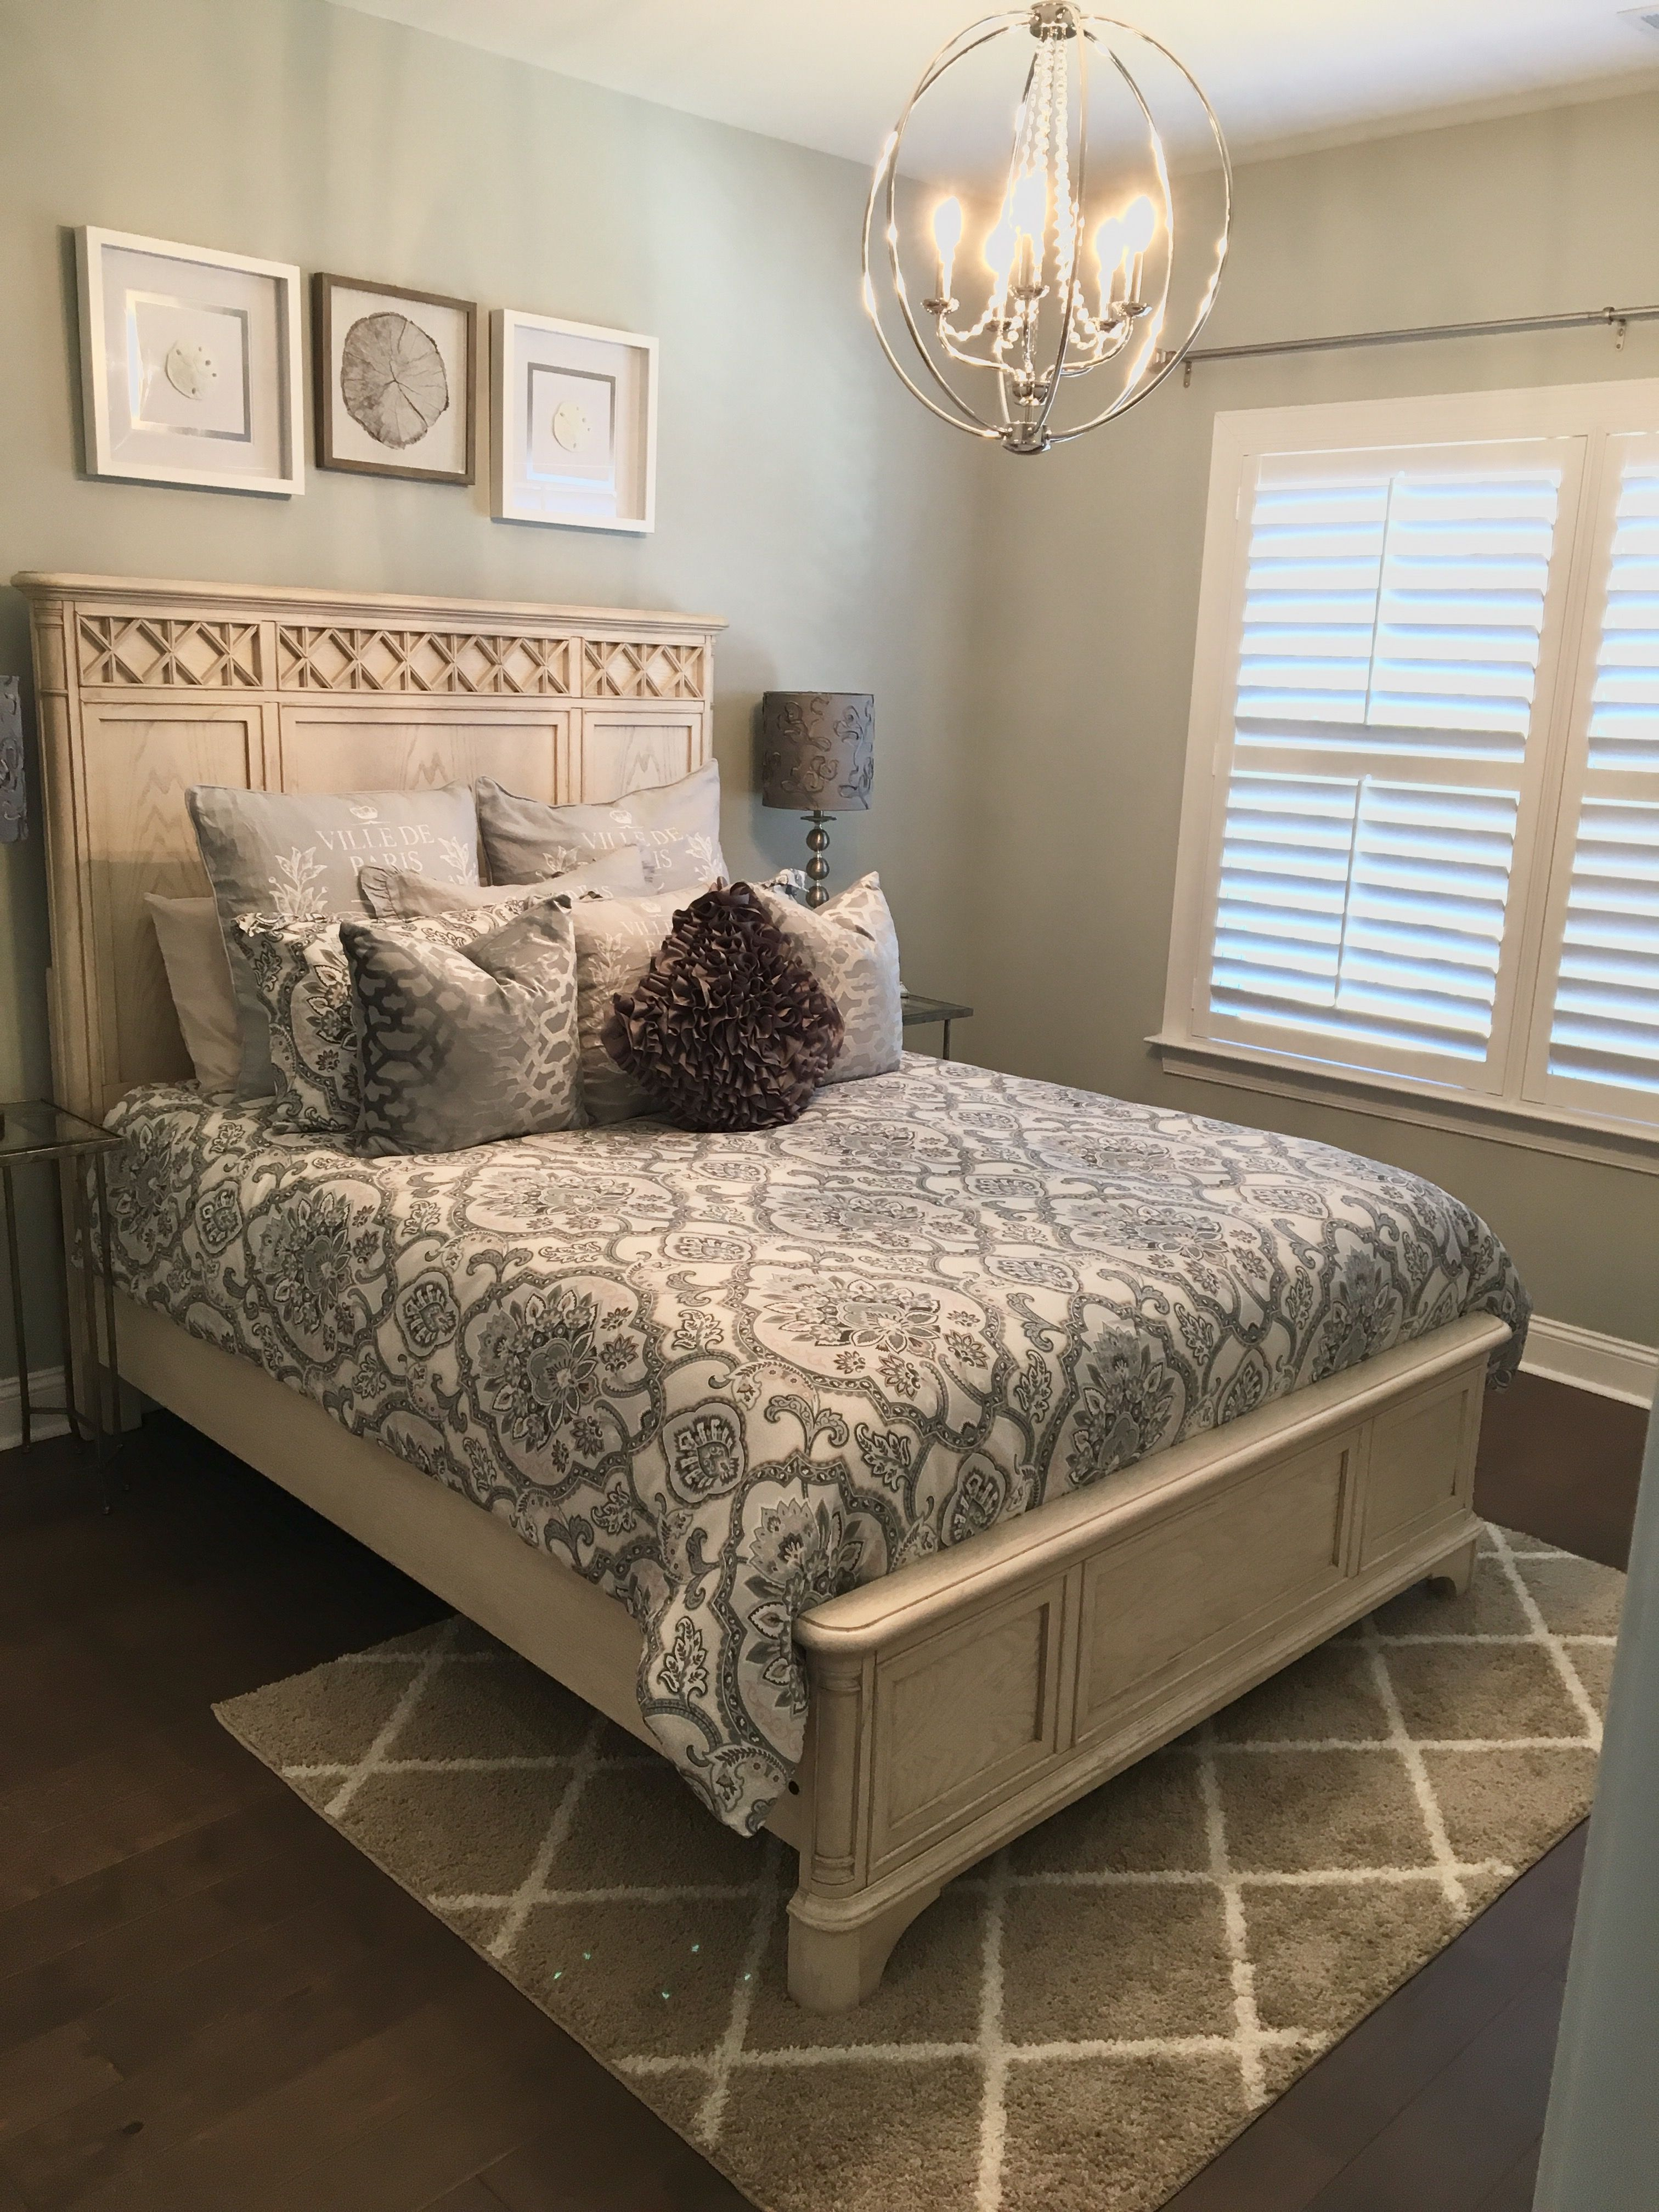 SW Comfort Gray - With Creams and Tans - Guest Bedroom Ideas Iris